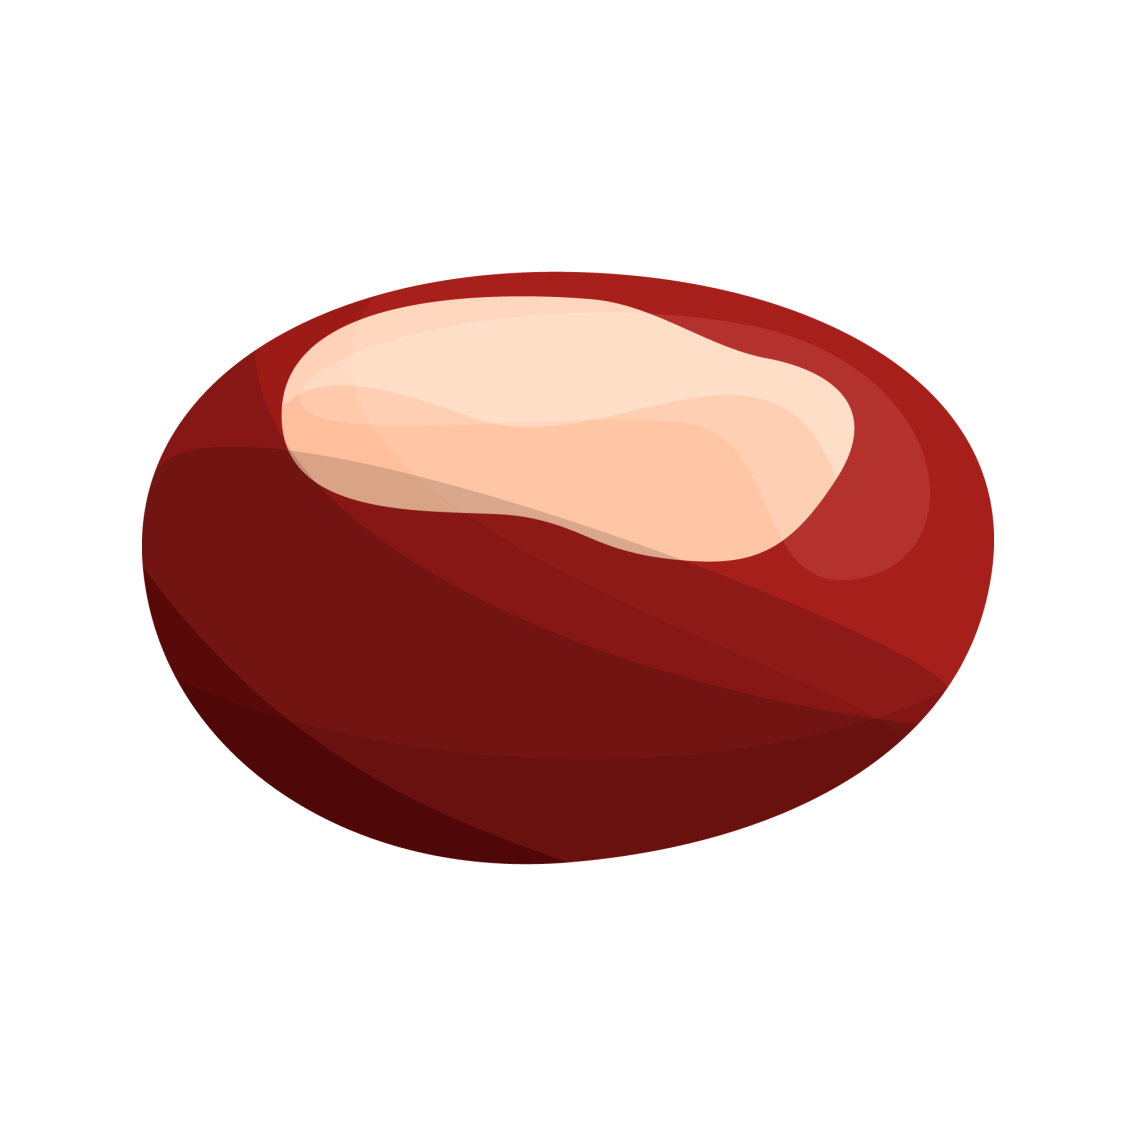 chestnut-icon